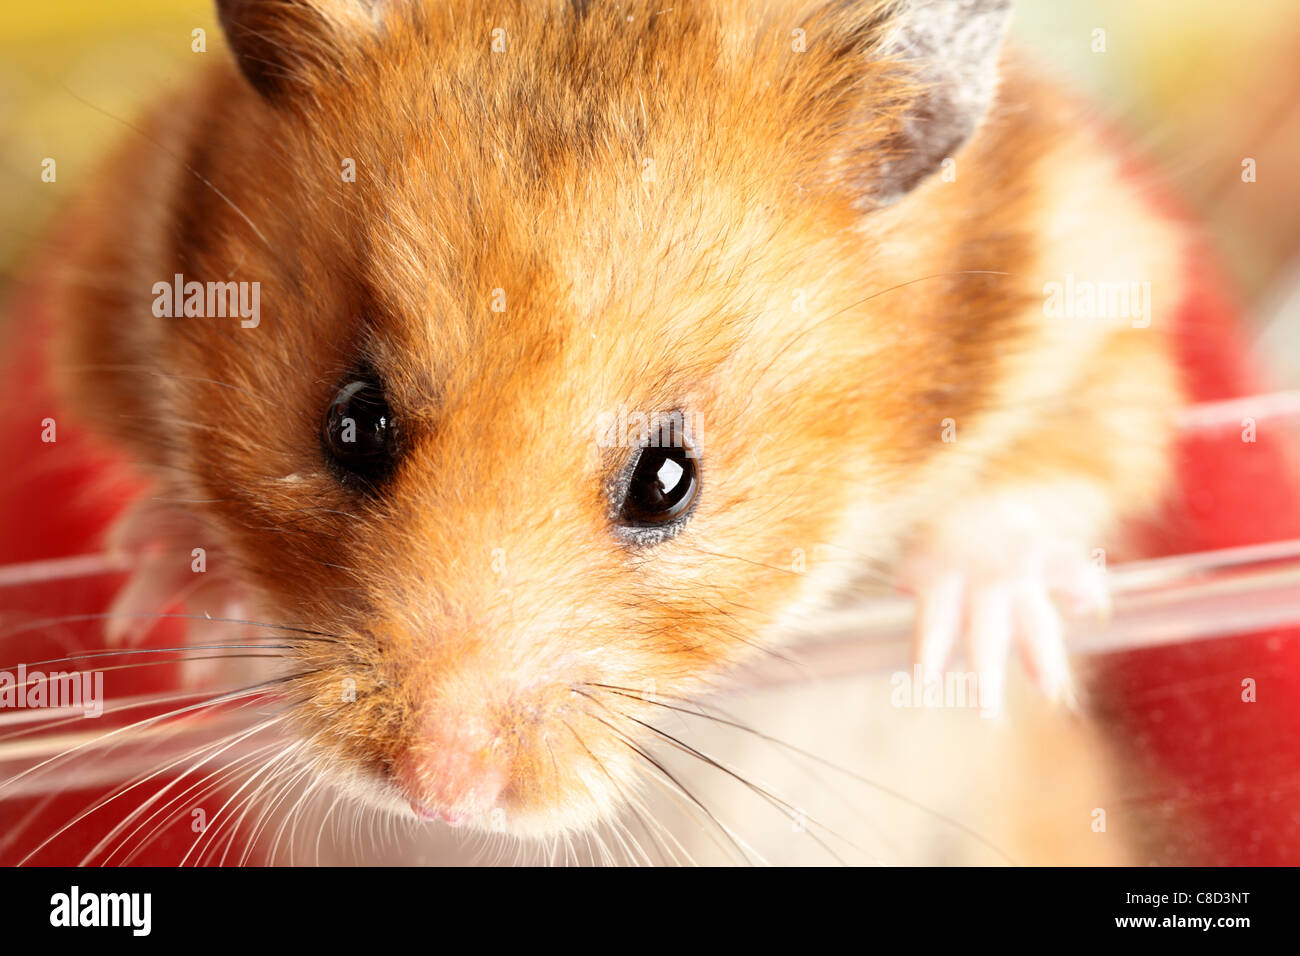 Muzzle Of Red Hamster Close Up Stock Image